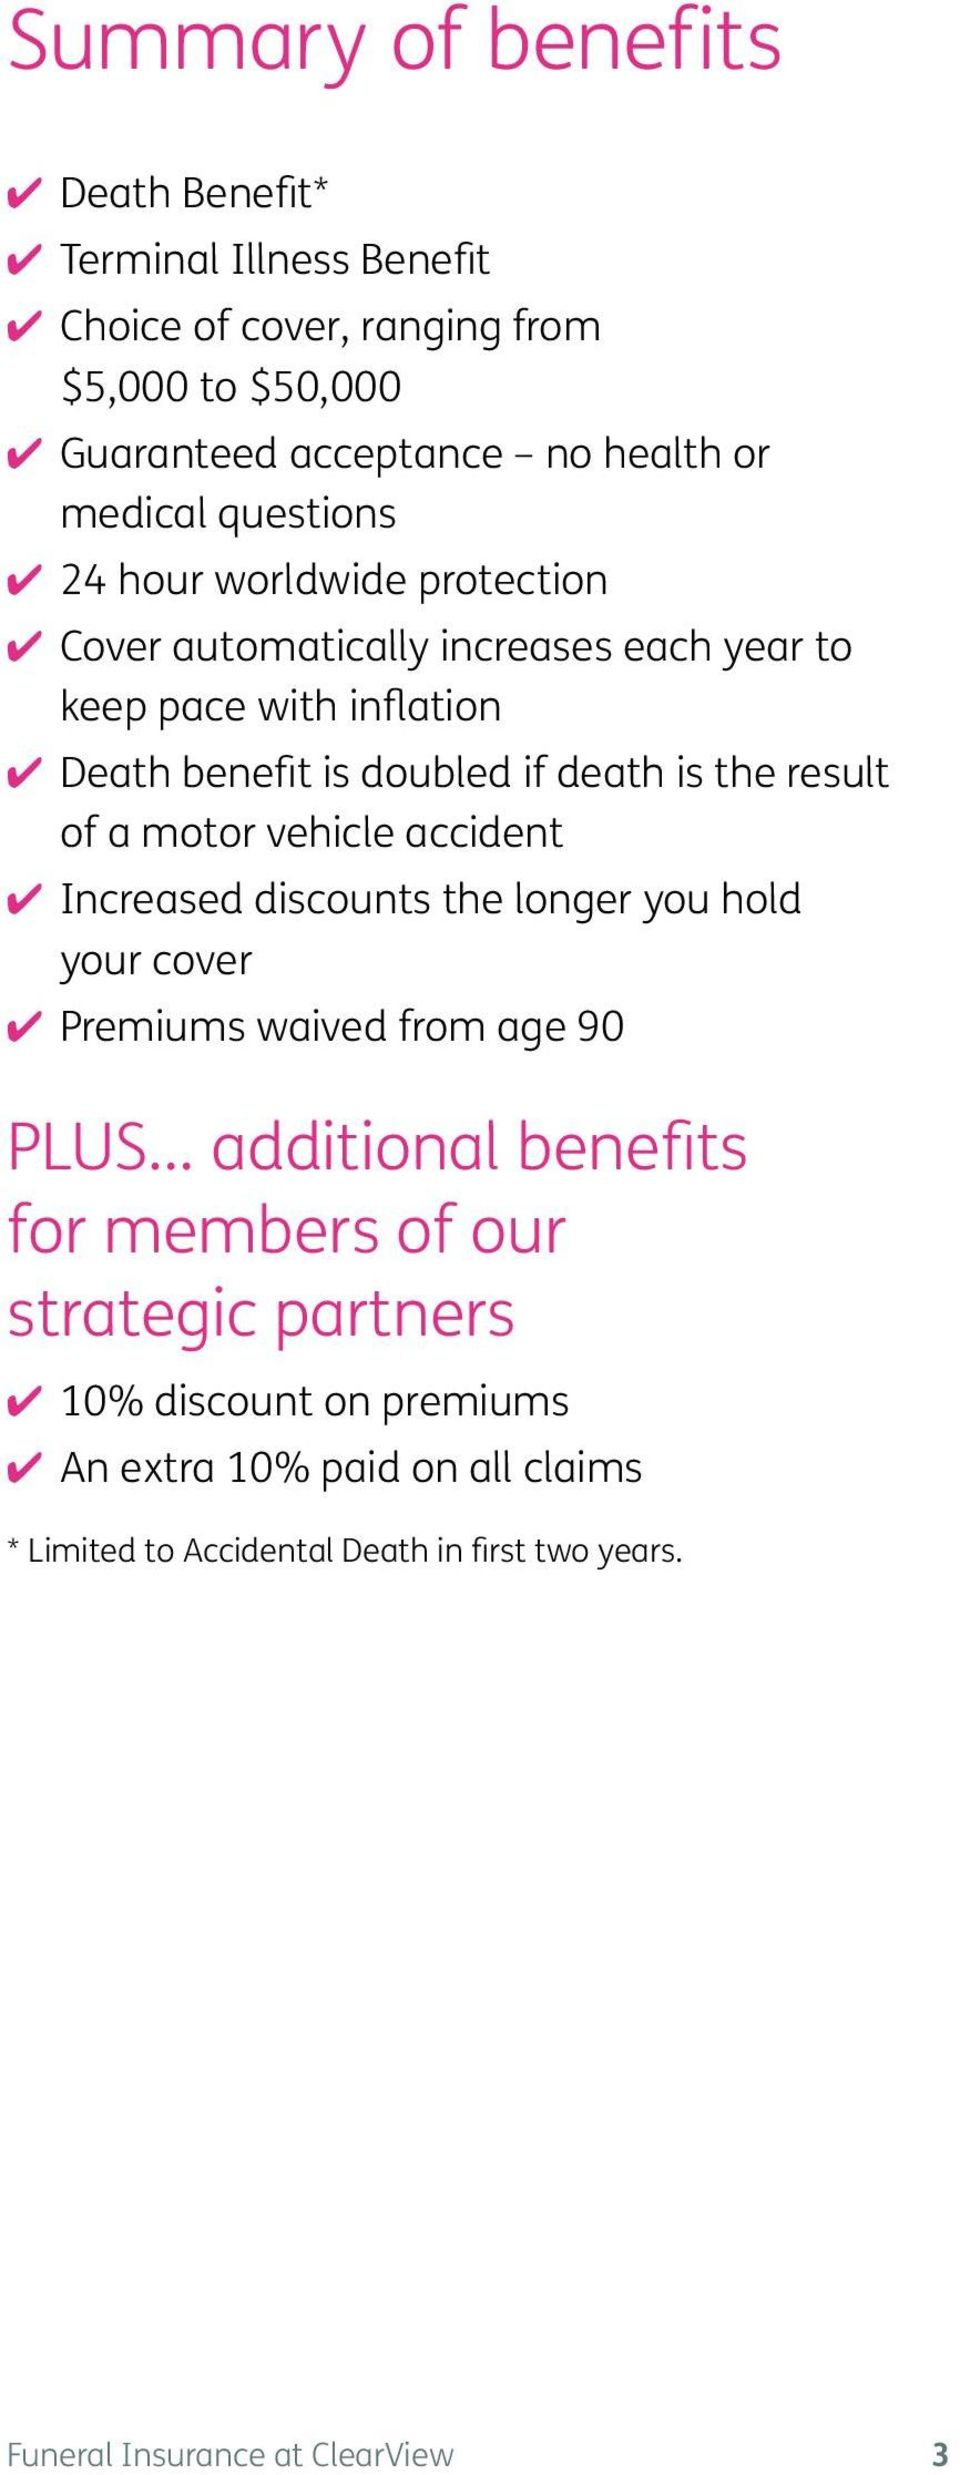 result of a motor vehicle accident 4 Increased discounts the longer you hold your cover 4 Premiums waived from age 90 PLUS additional benefits for members of